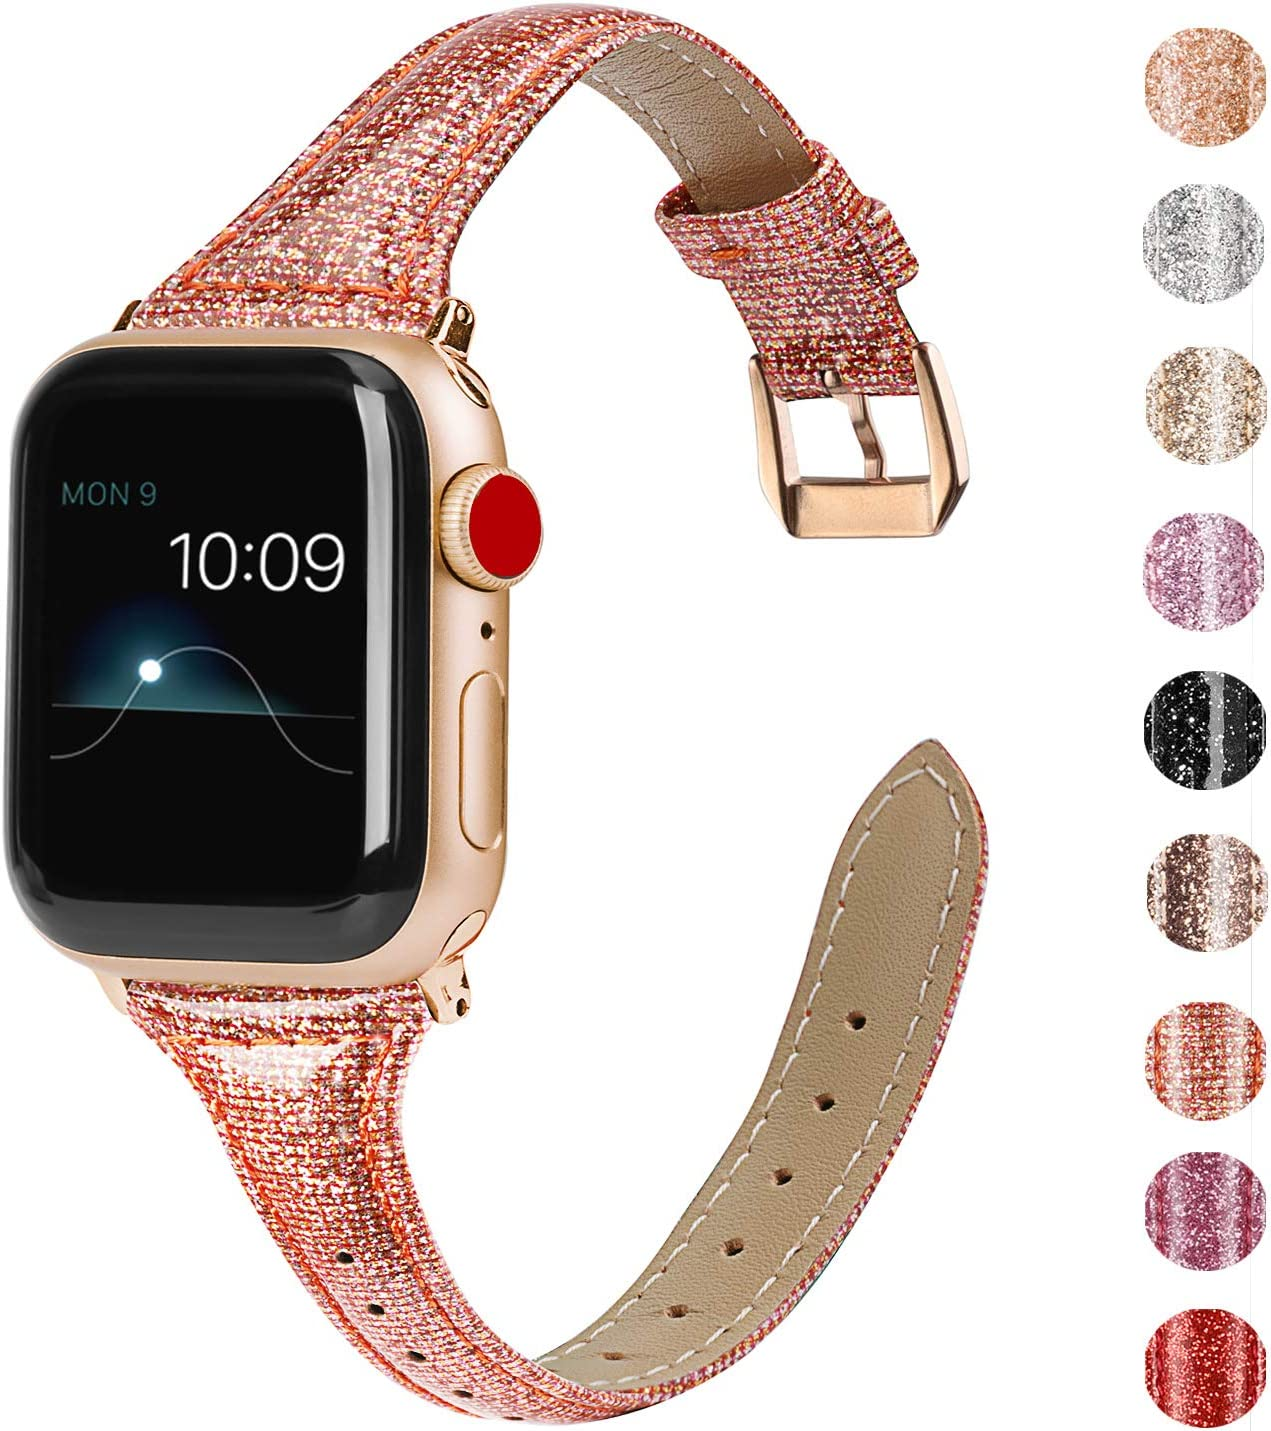 Wearlizer Deep Gold Thin Leather Compatible with Apple Watch Bands 42mm 44mm Womens for iWatch SE Slim Bling Wristband Smooth Glitter Strap (Gold Clasp) for Series 6 5 4 3 2 1-Glistening Rose Gold